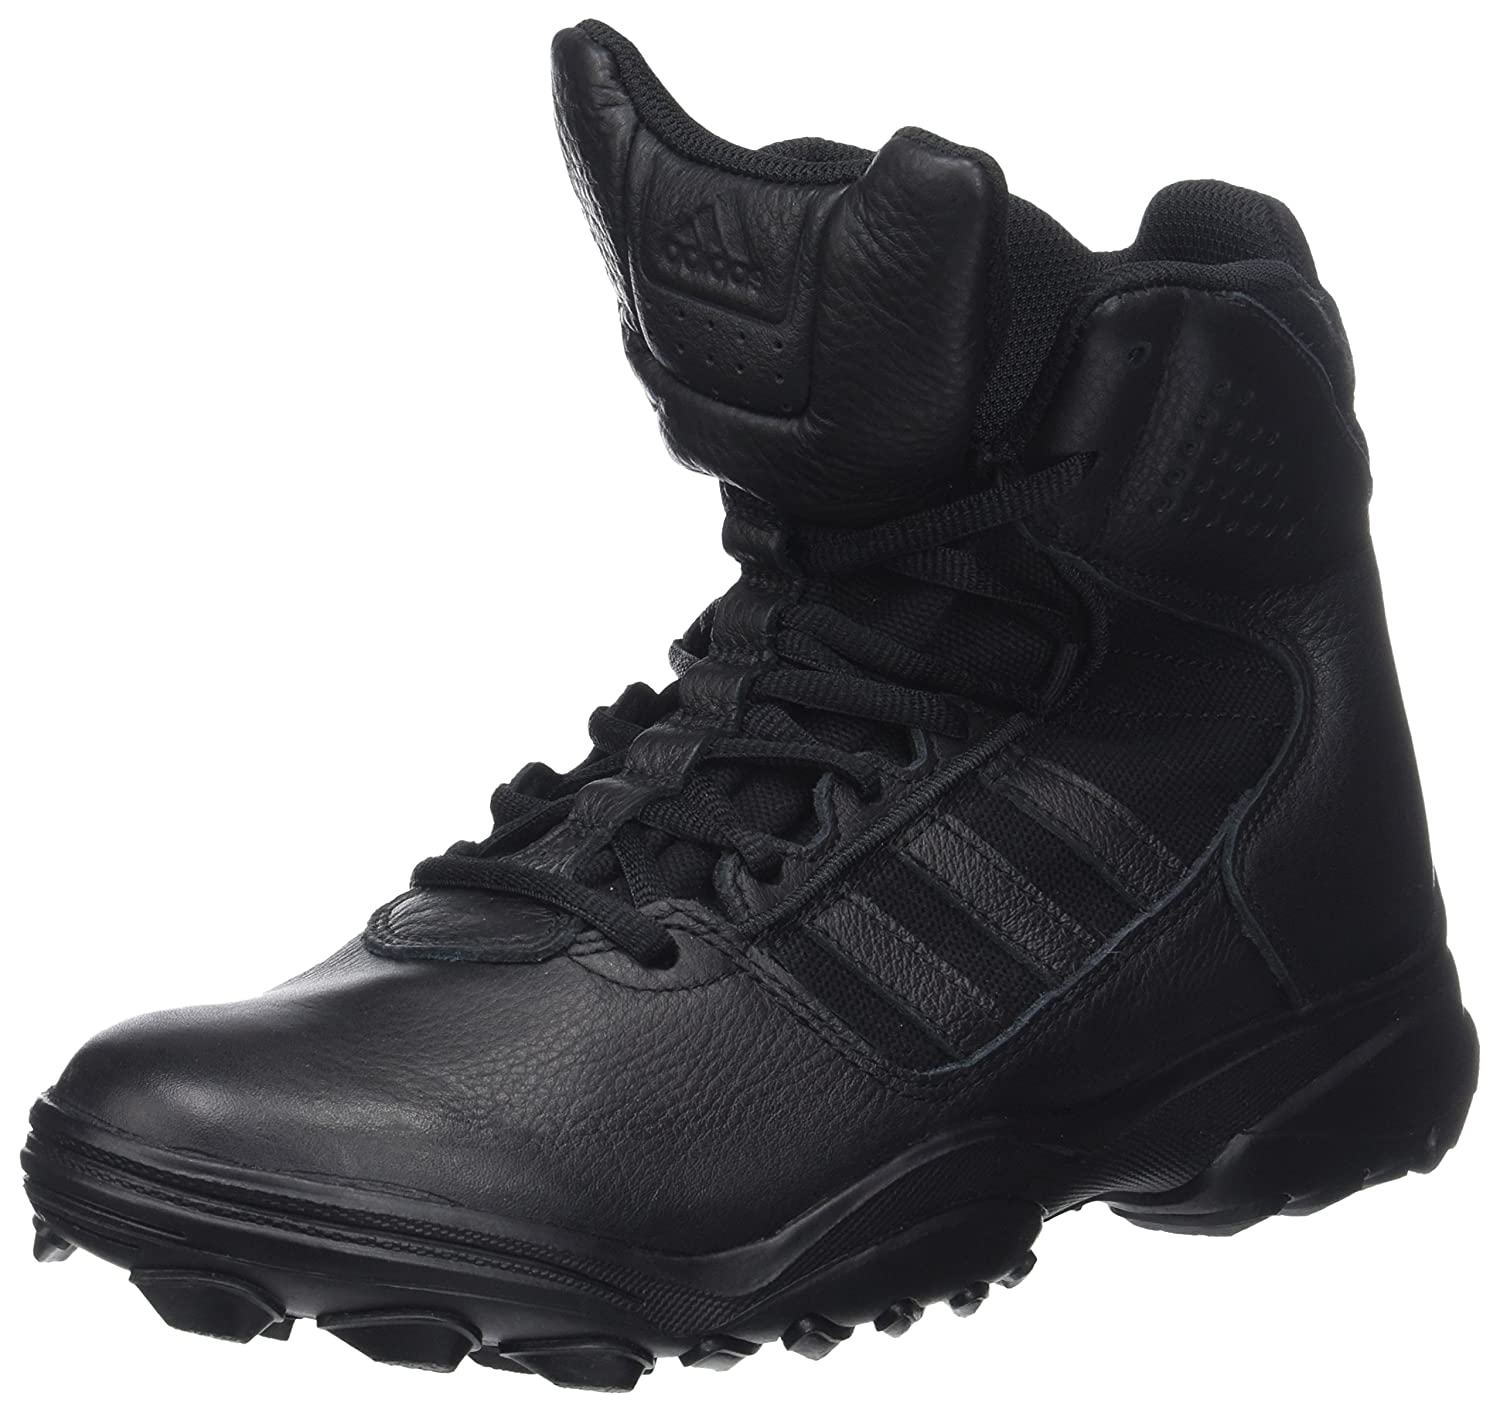 577143b9f55 adidas Men's GSG-9.7 Tactical Boot